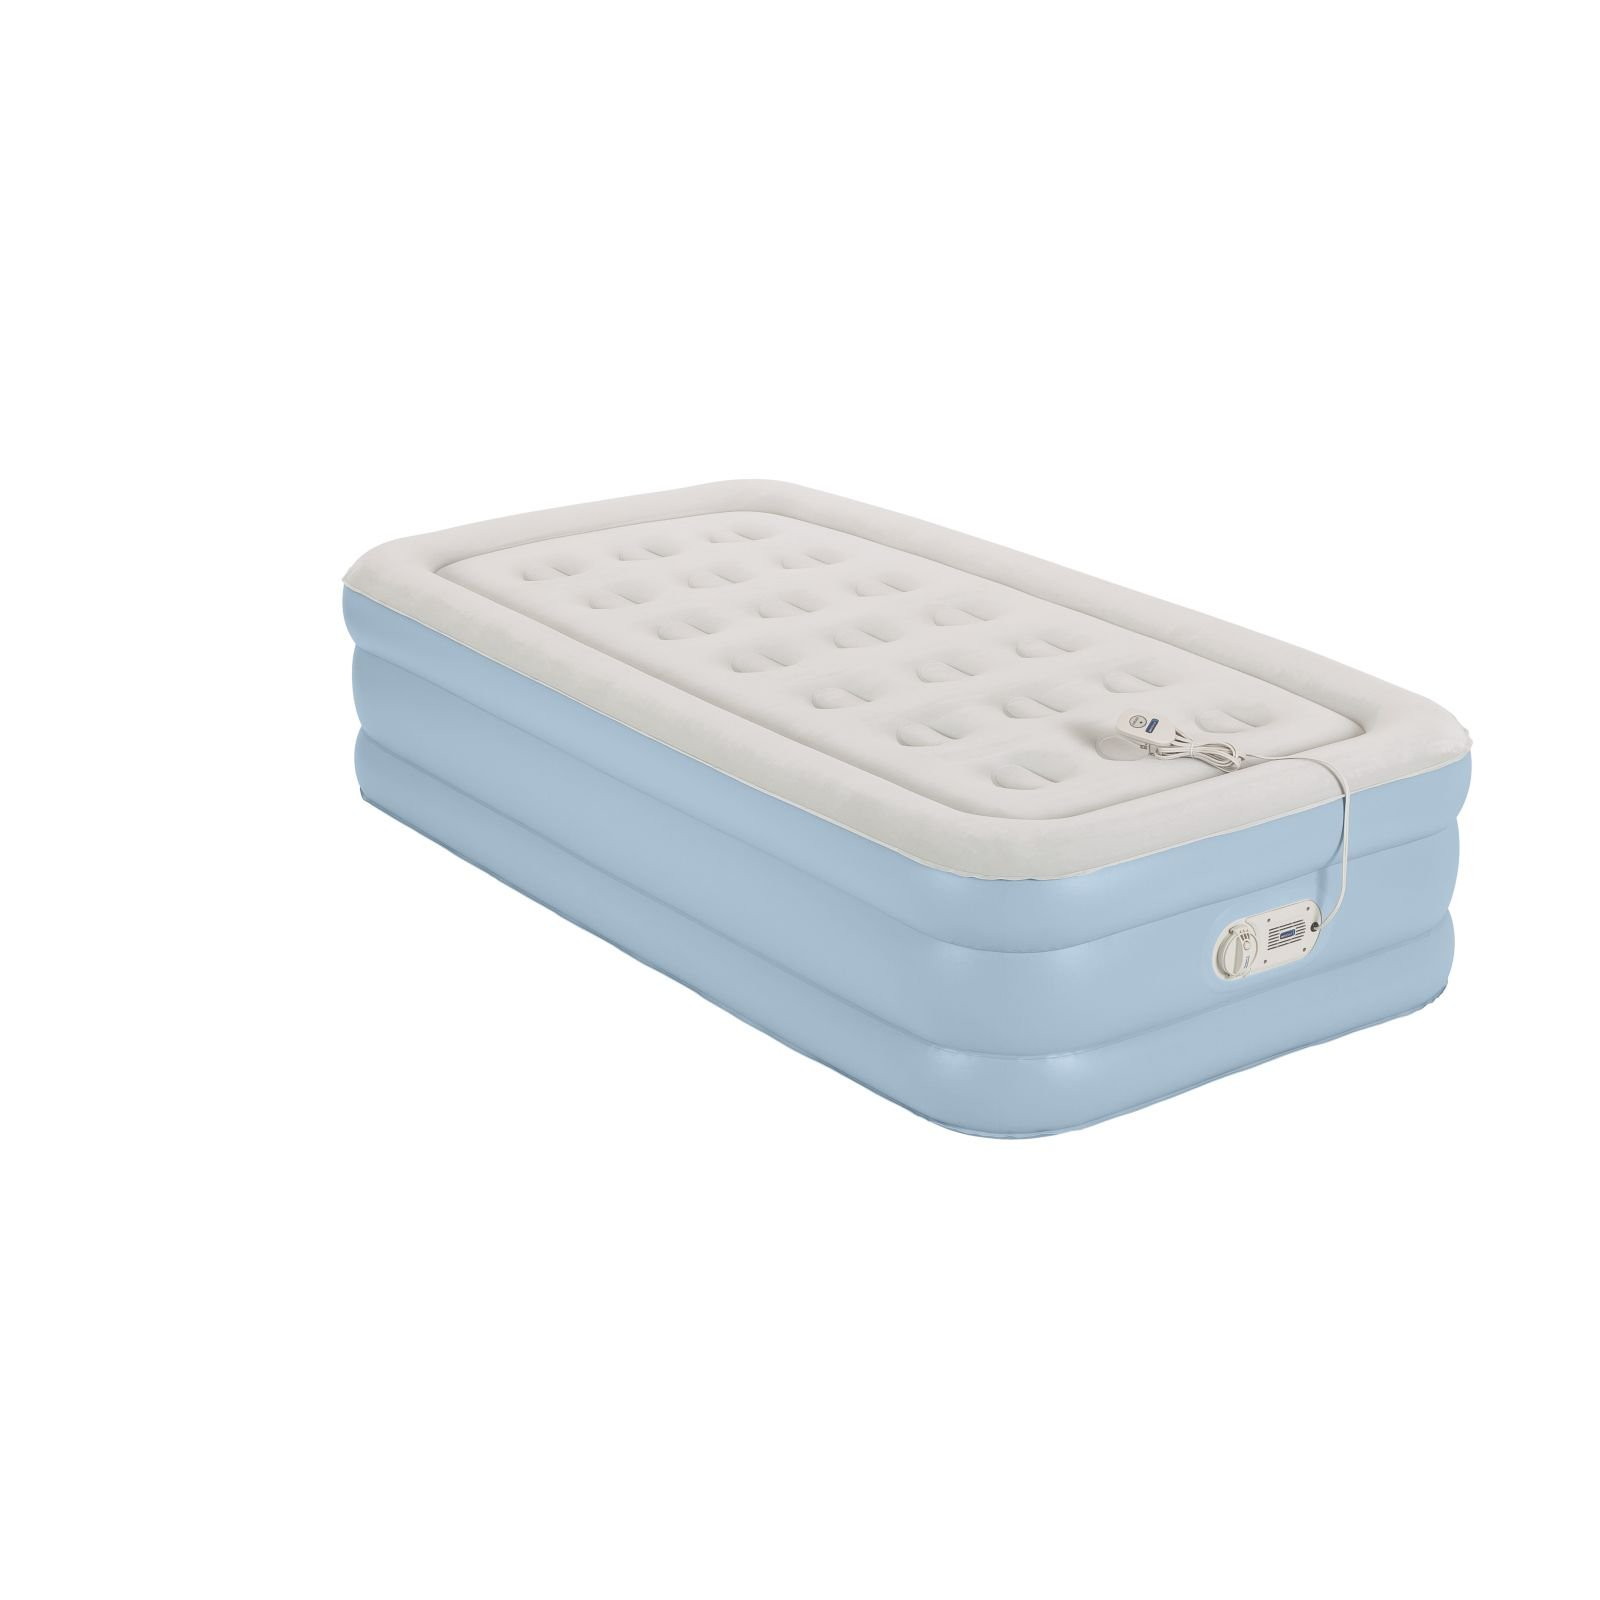 AeroBed One-Touch Comfort Air Mattress, Twin by AeroBed (Image #3)